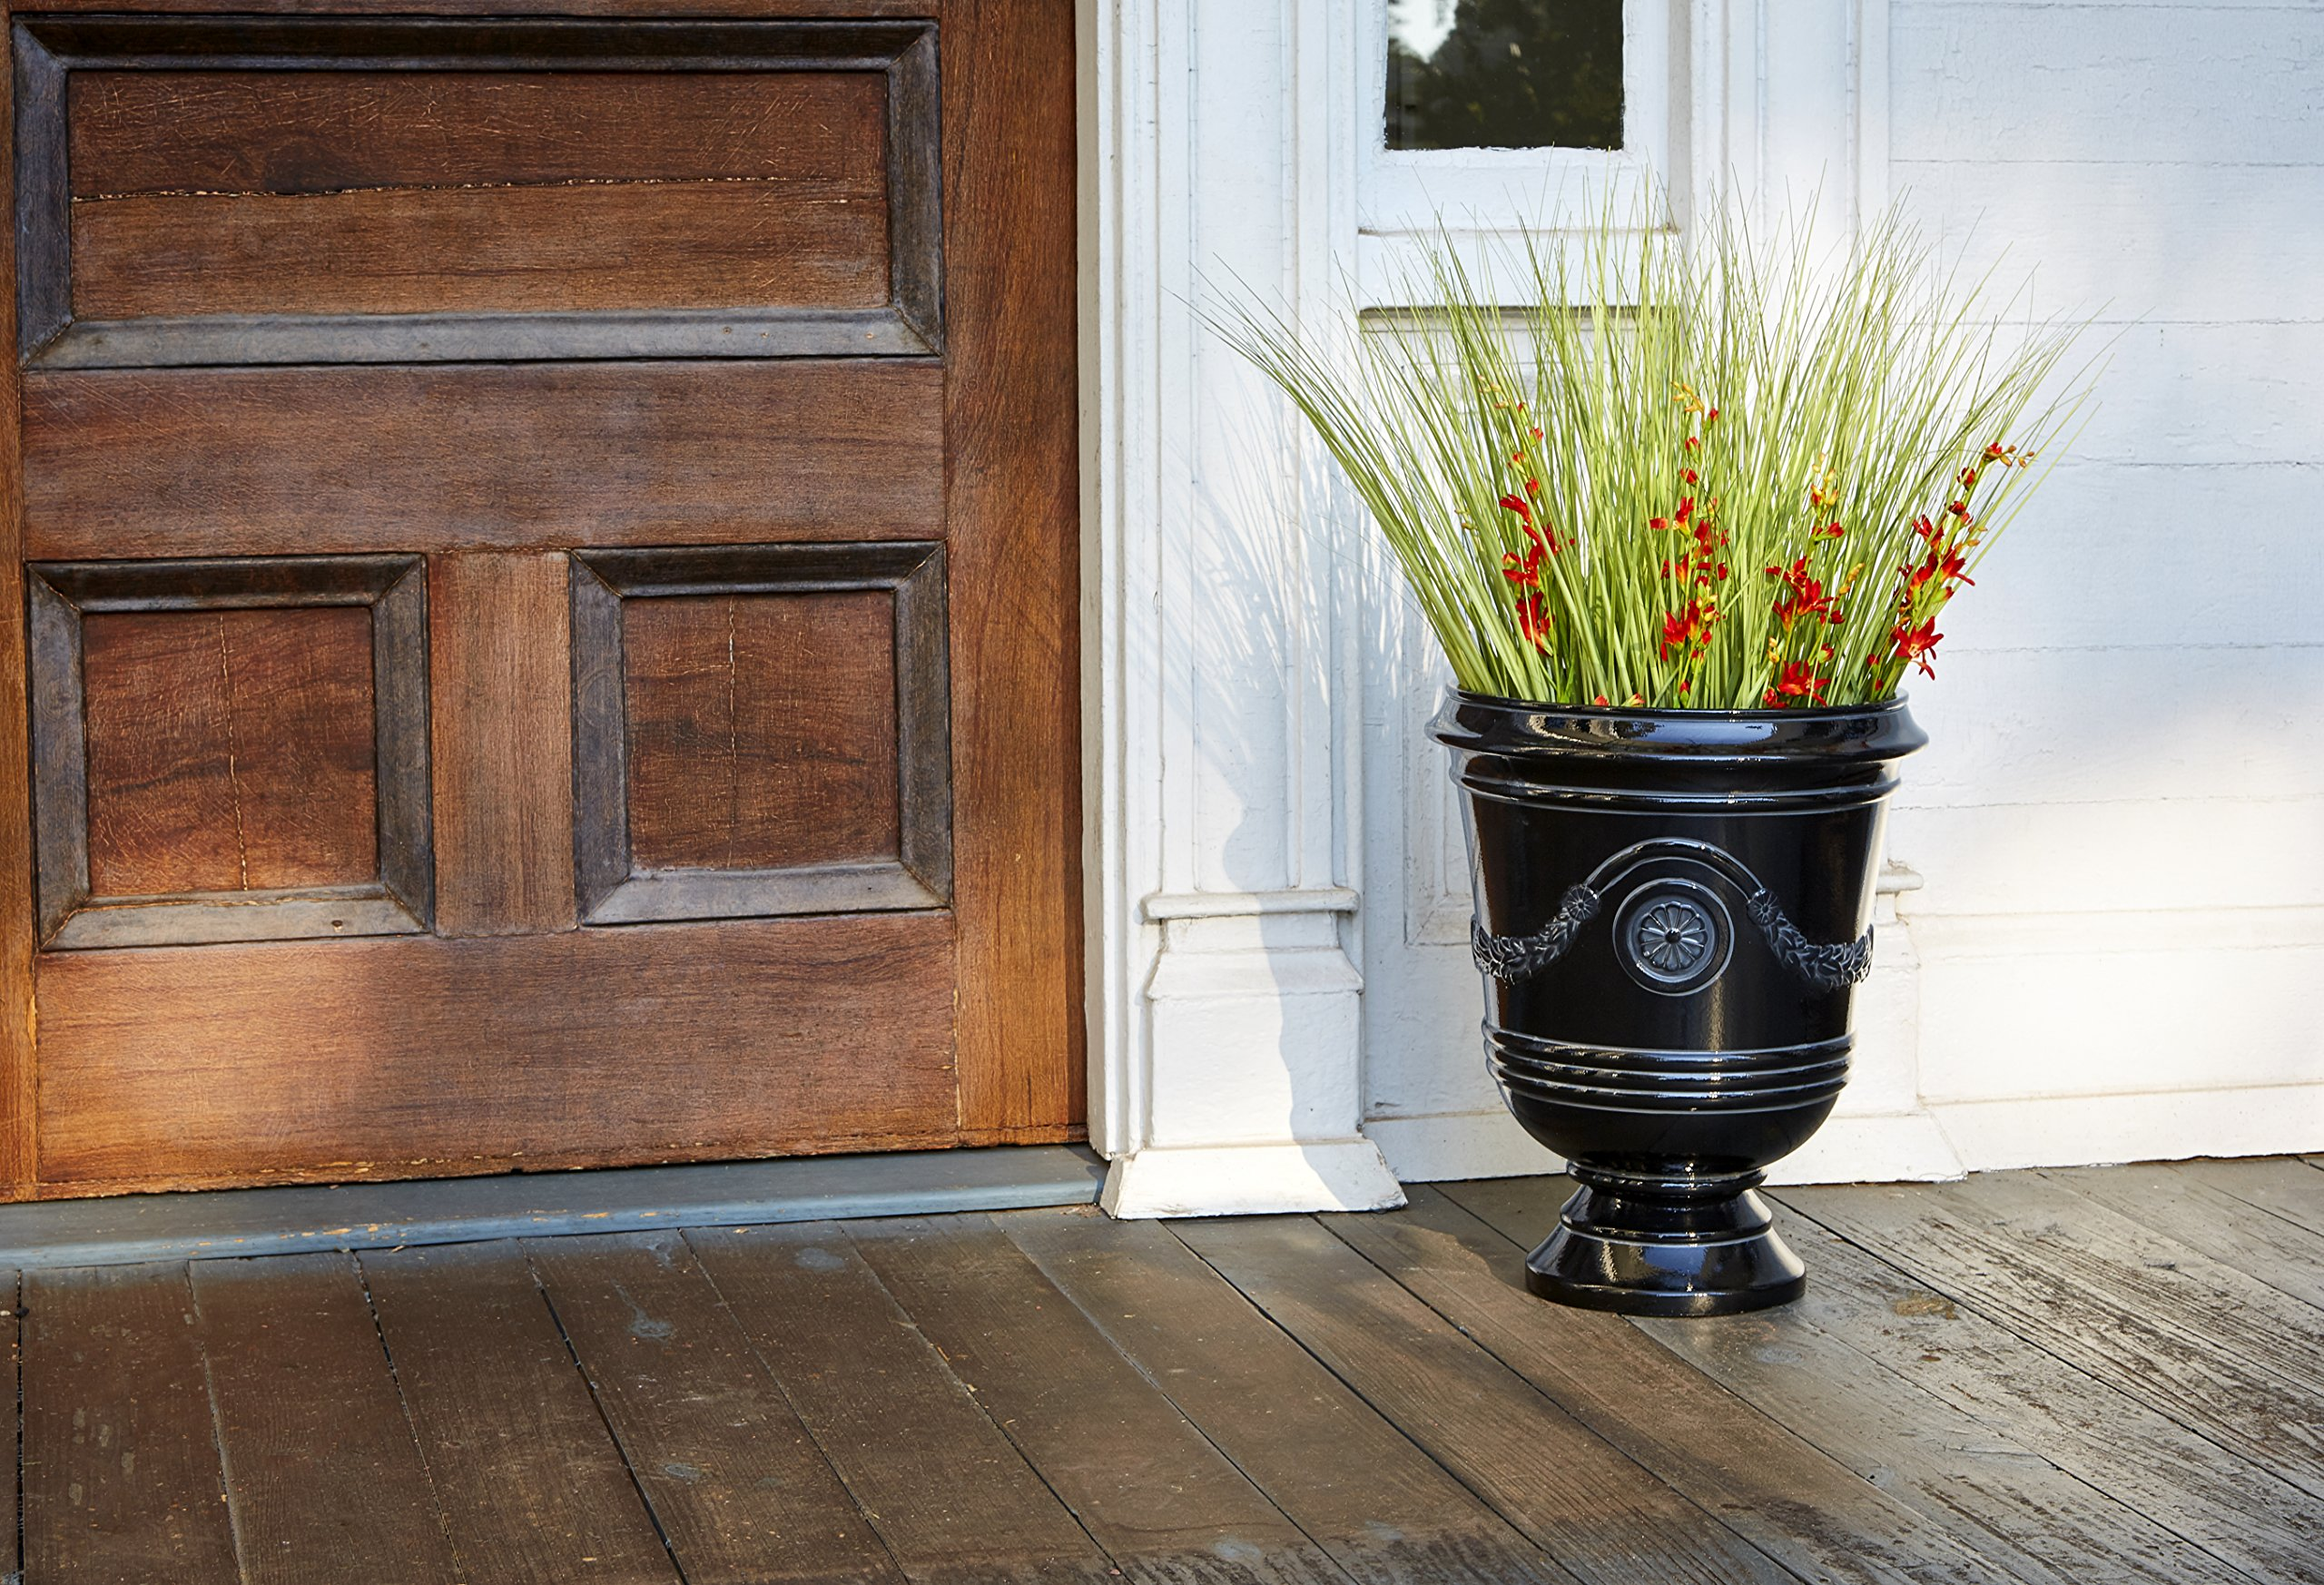 Southern Patio 15'' Diameter Porter Urn Planter, Black by Southern Patio (Image #2)